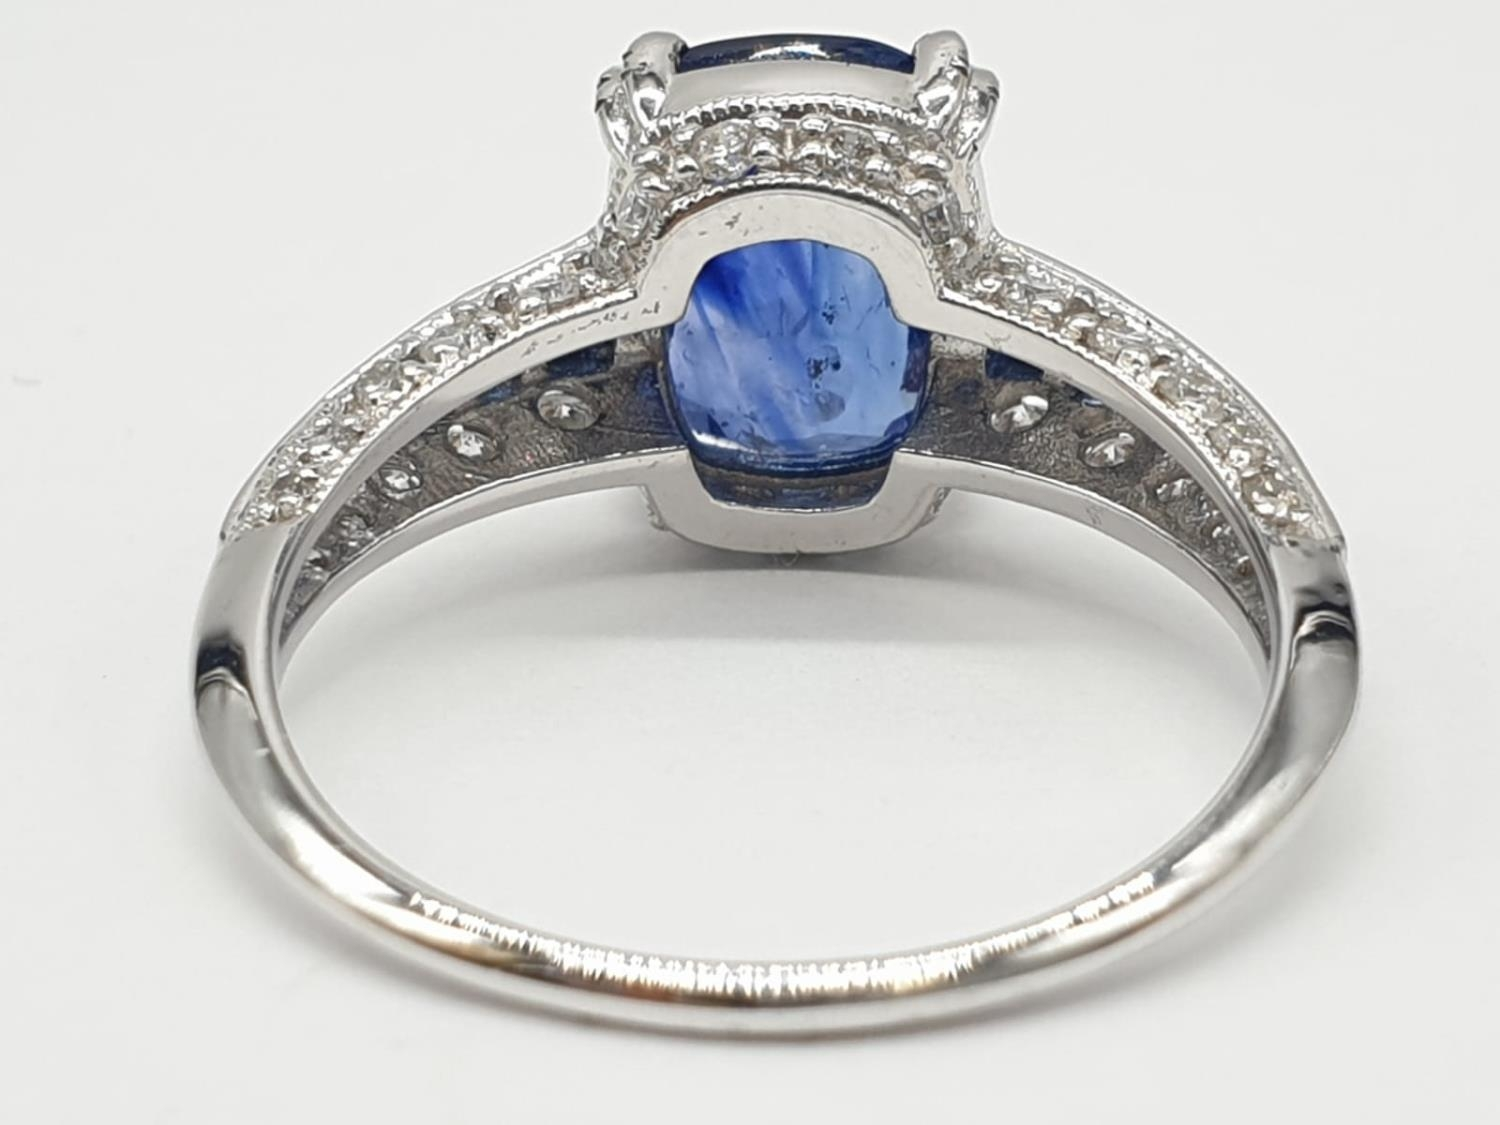 18ct White gold ring with sapphire and diamonds. Weighs 3.2g and is a size N. - Image 5 of 6